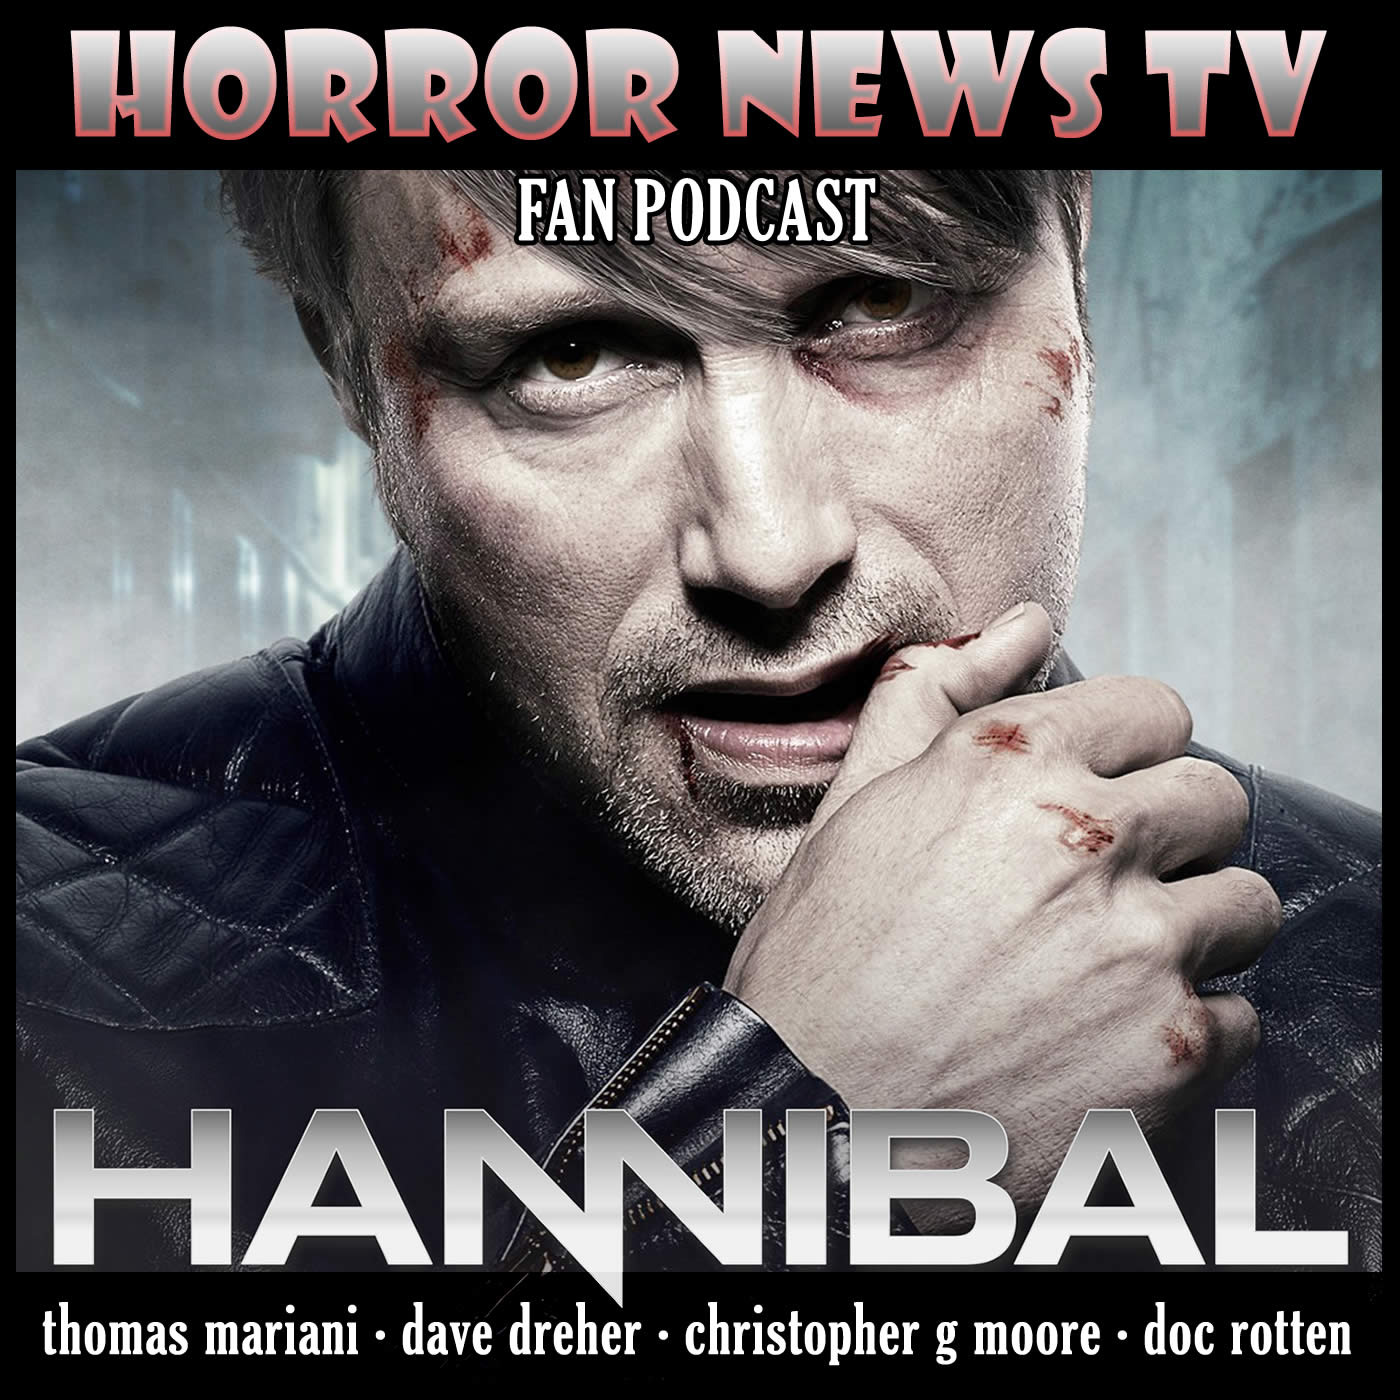 The  Hannibal Fan Podcast on Horror News TV